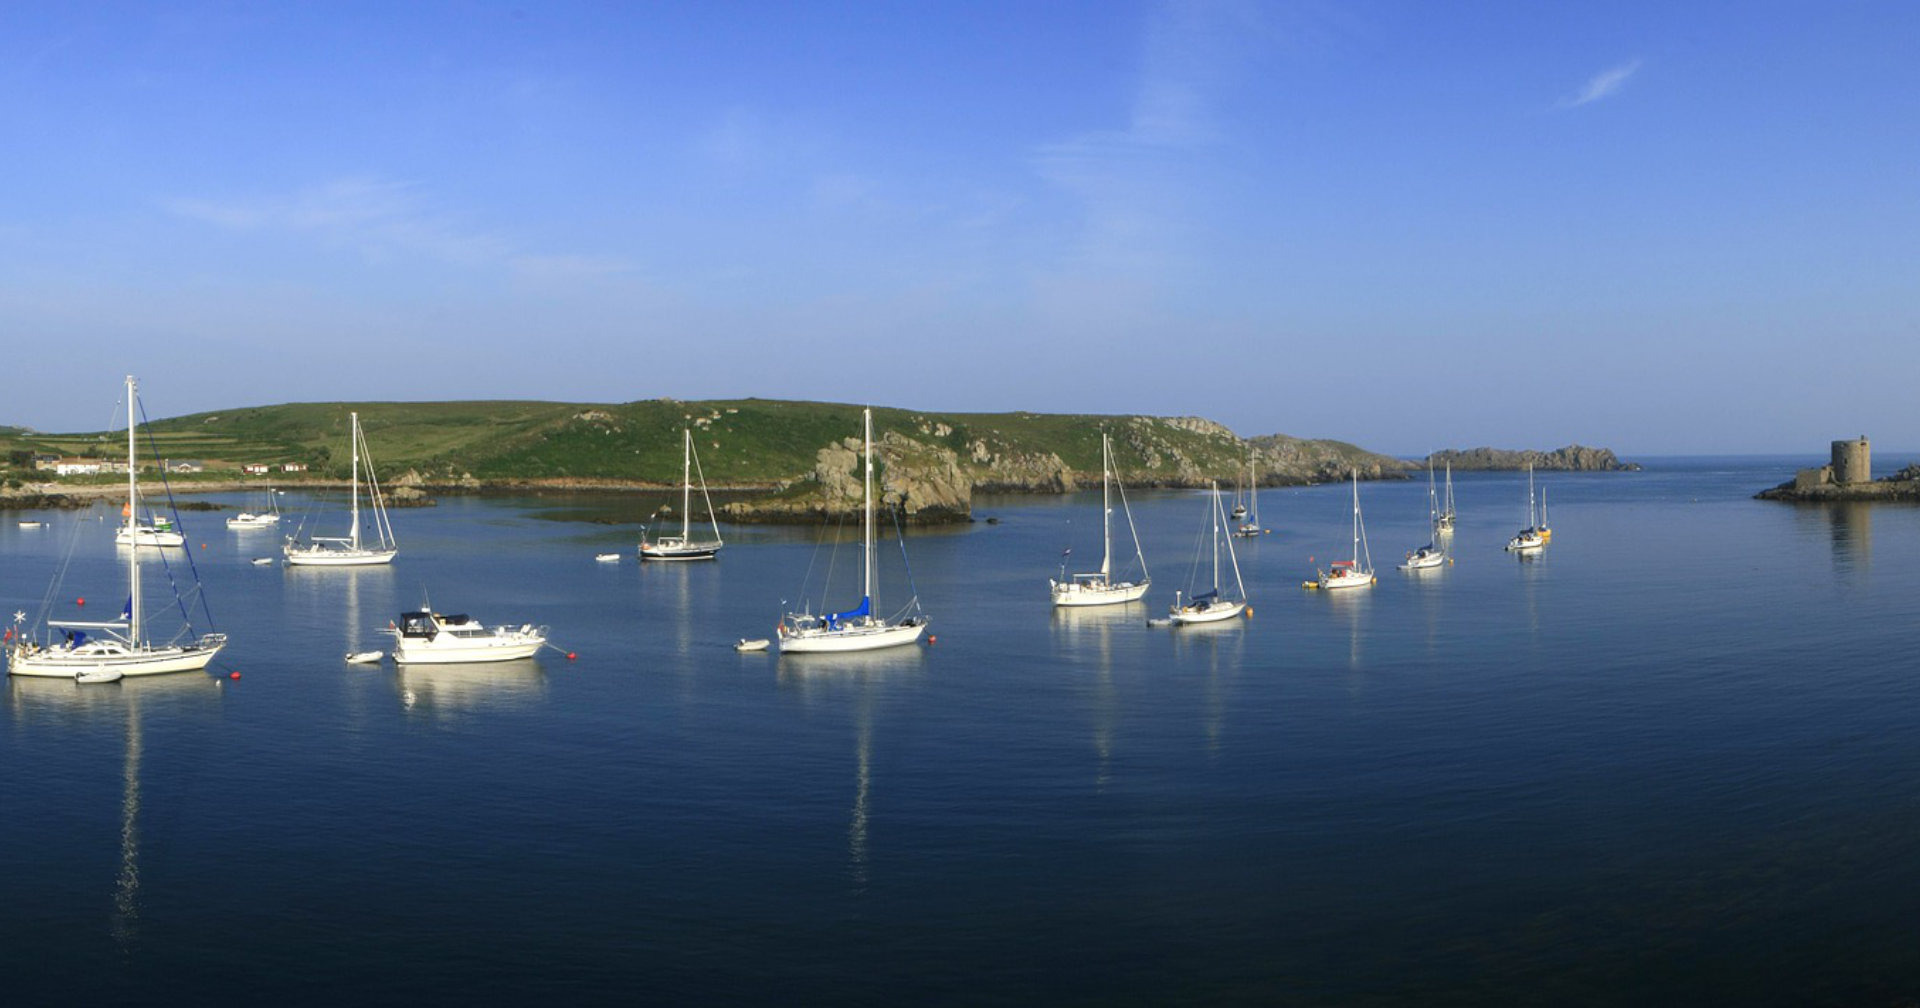 Sail to the Scilly Isles, glittering white sandy beaches and seals playing in the swirling kelp forests.